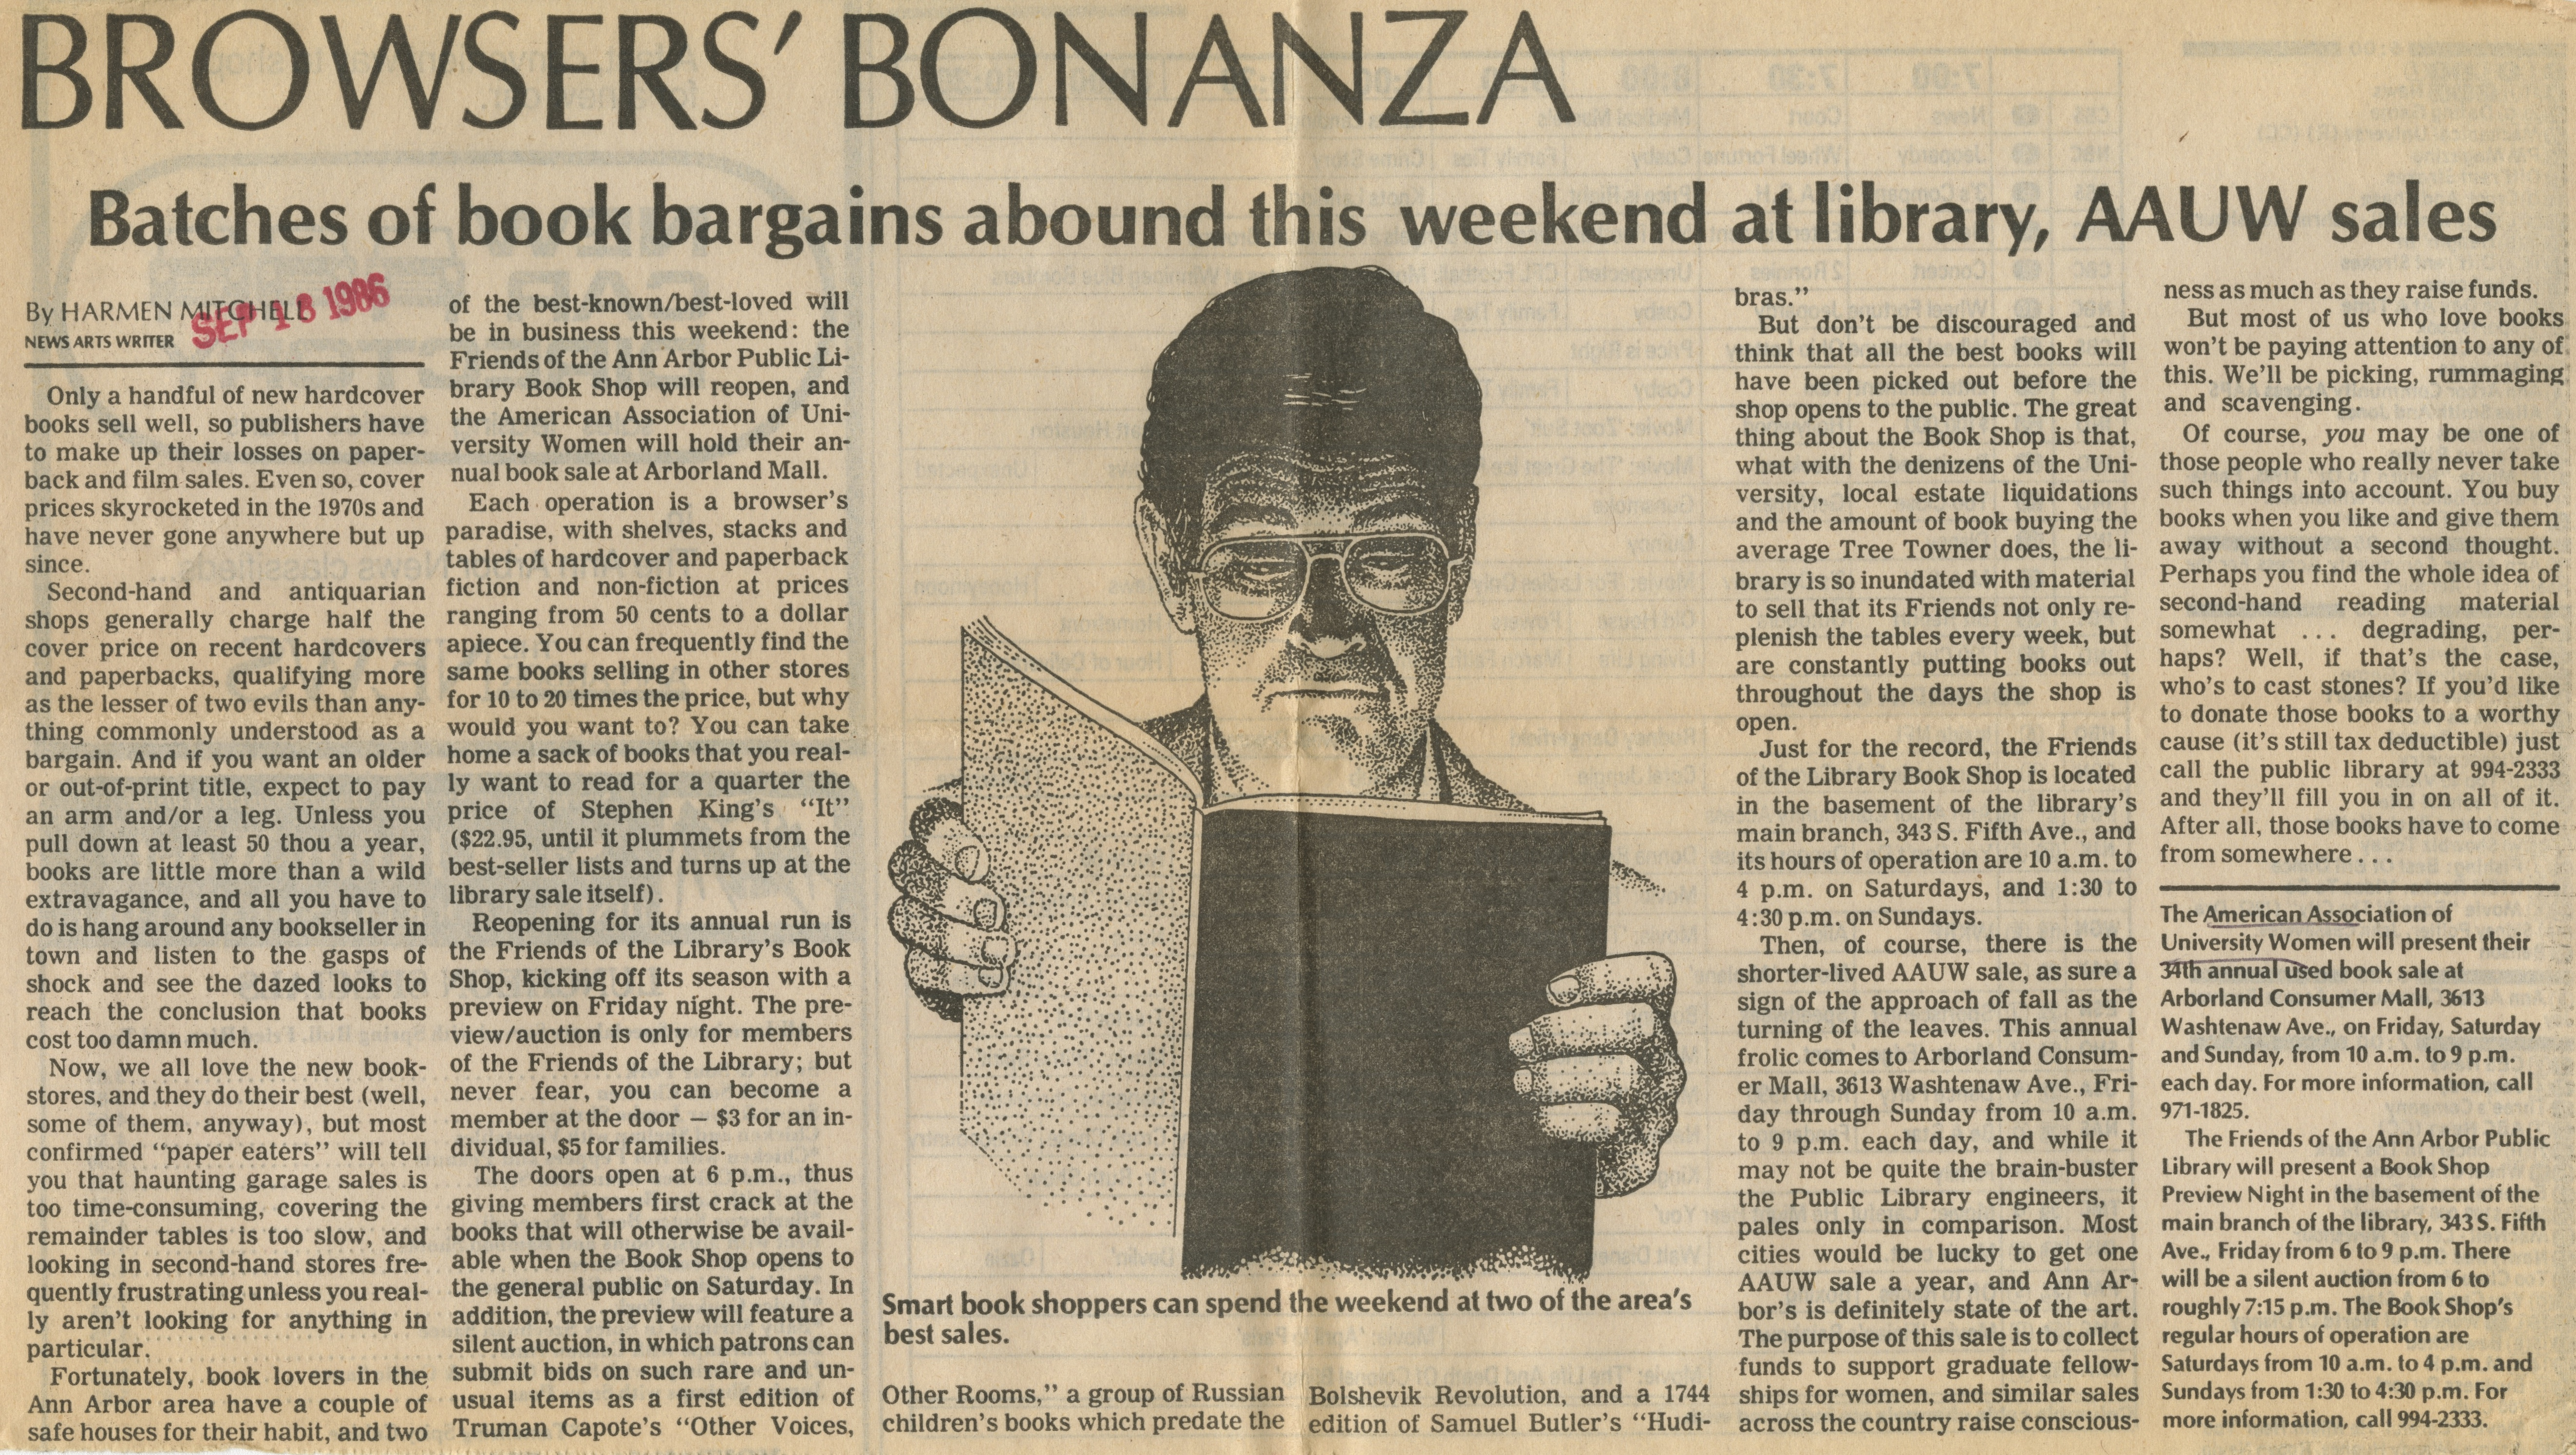 Browsers' Bonanza: Batches of Book Bargains Abound This Weekend at Library, AAUW Sales image